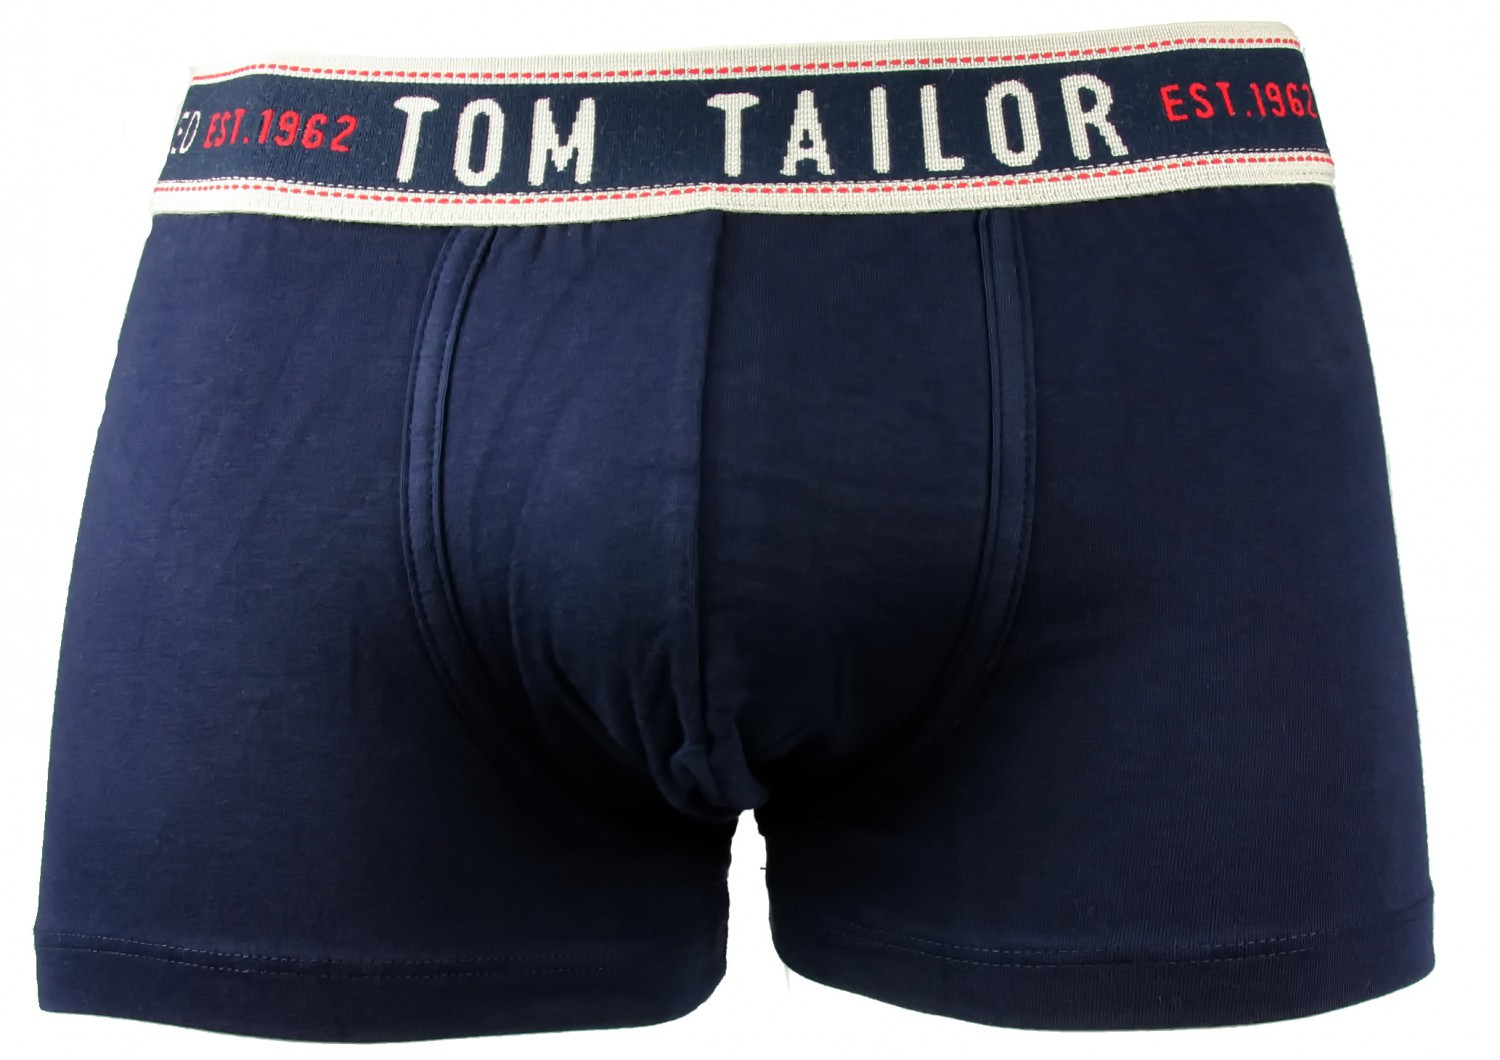 tom tailor x lastic boxershorts pant shorts boxer hipster. Black Bedroom Furniture Sets. Home Design Ideas